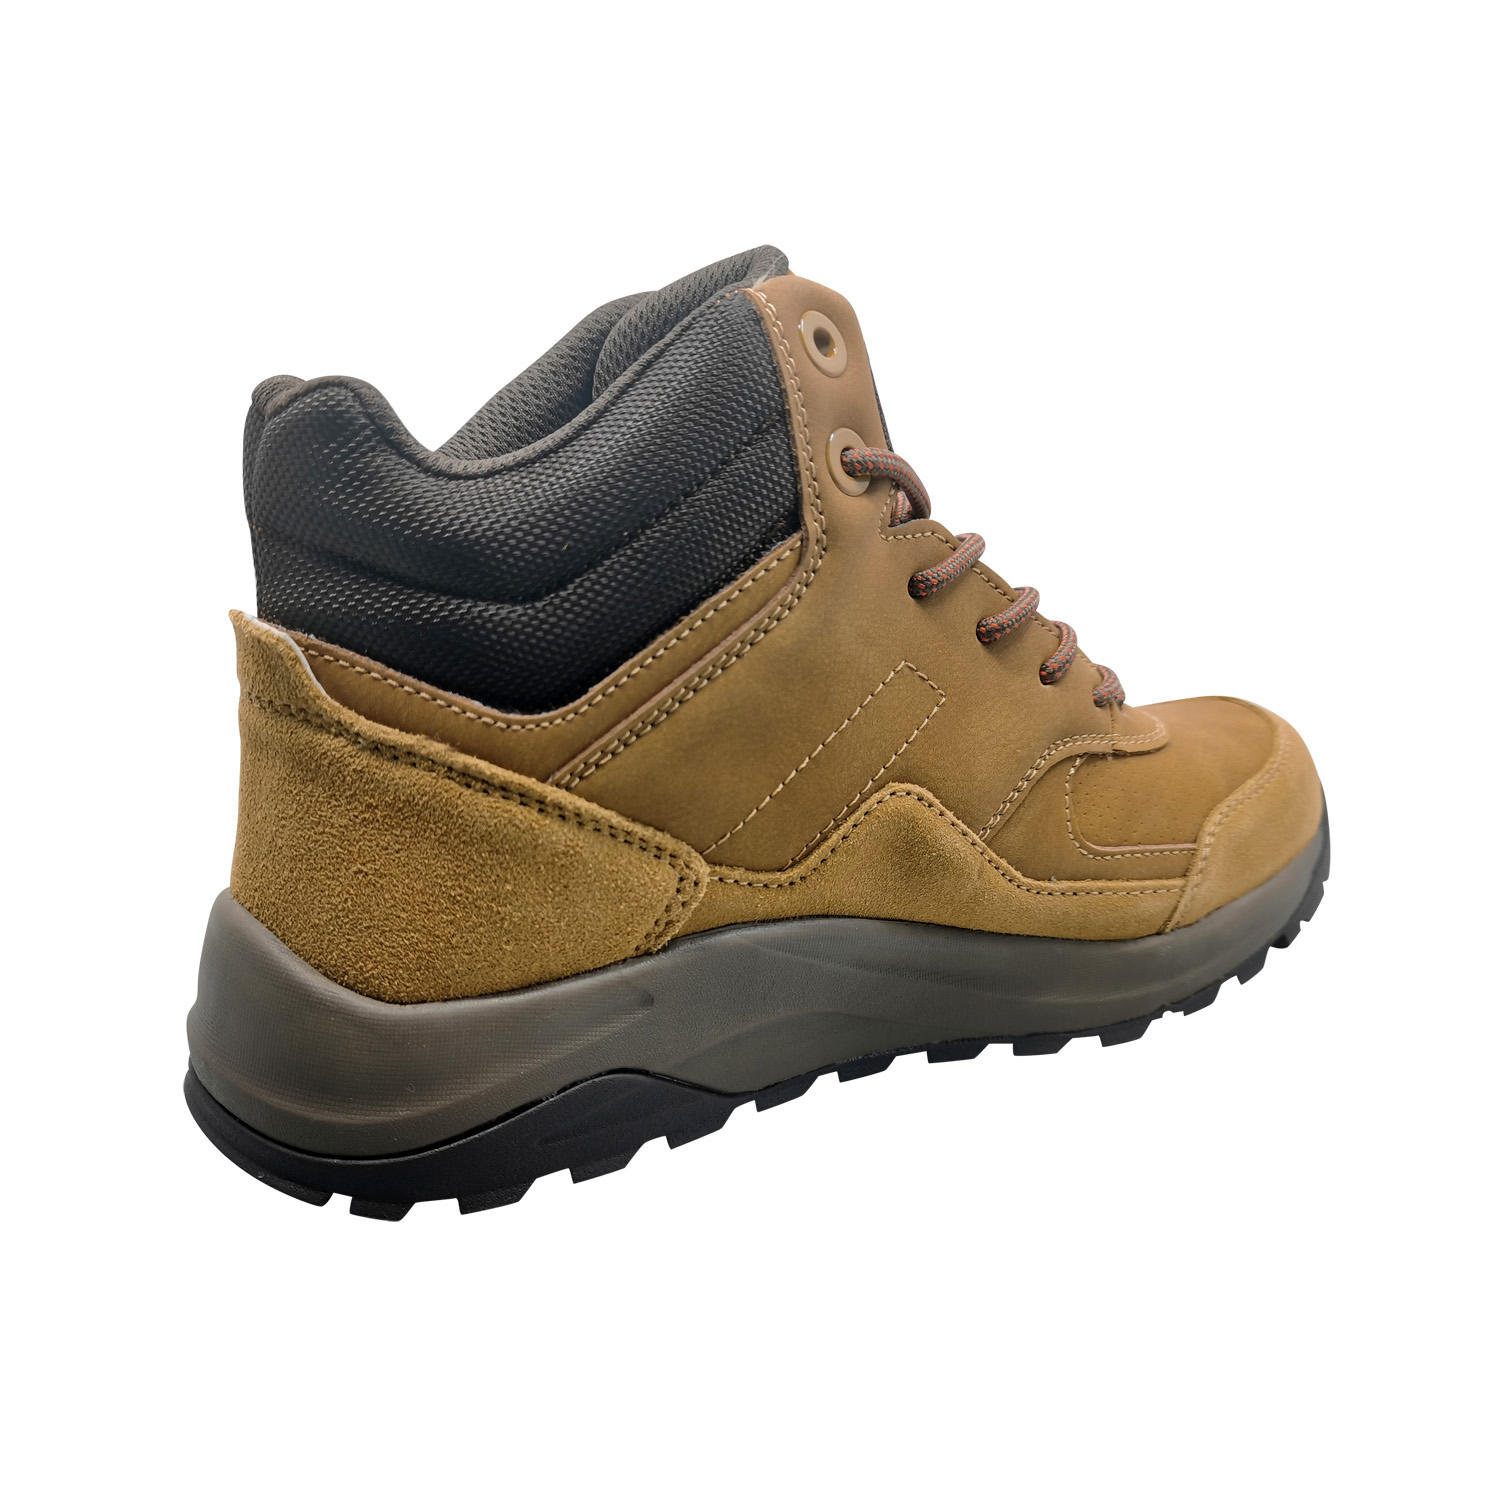 Zapato de Hombre Desert Race Michelin Footwear Waterproof Camel